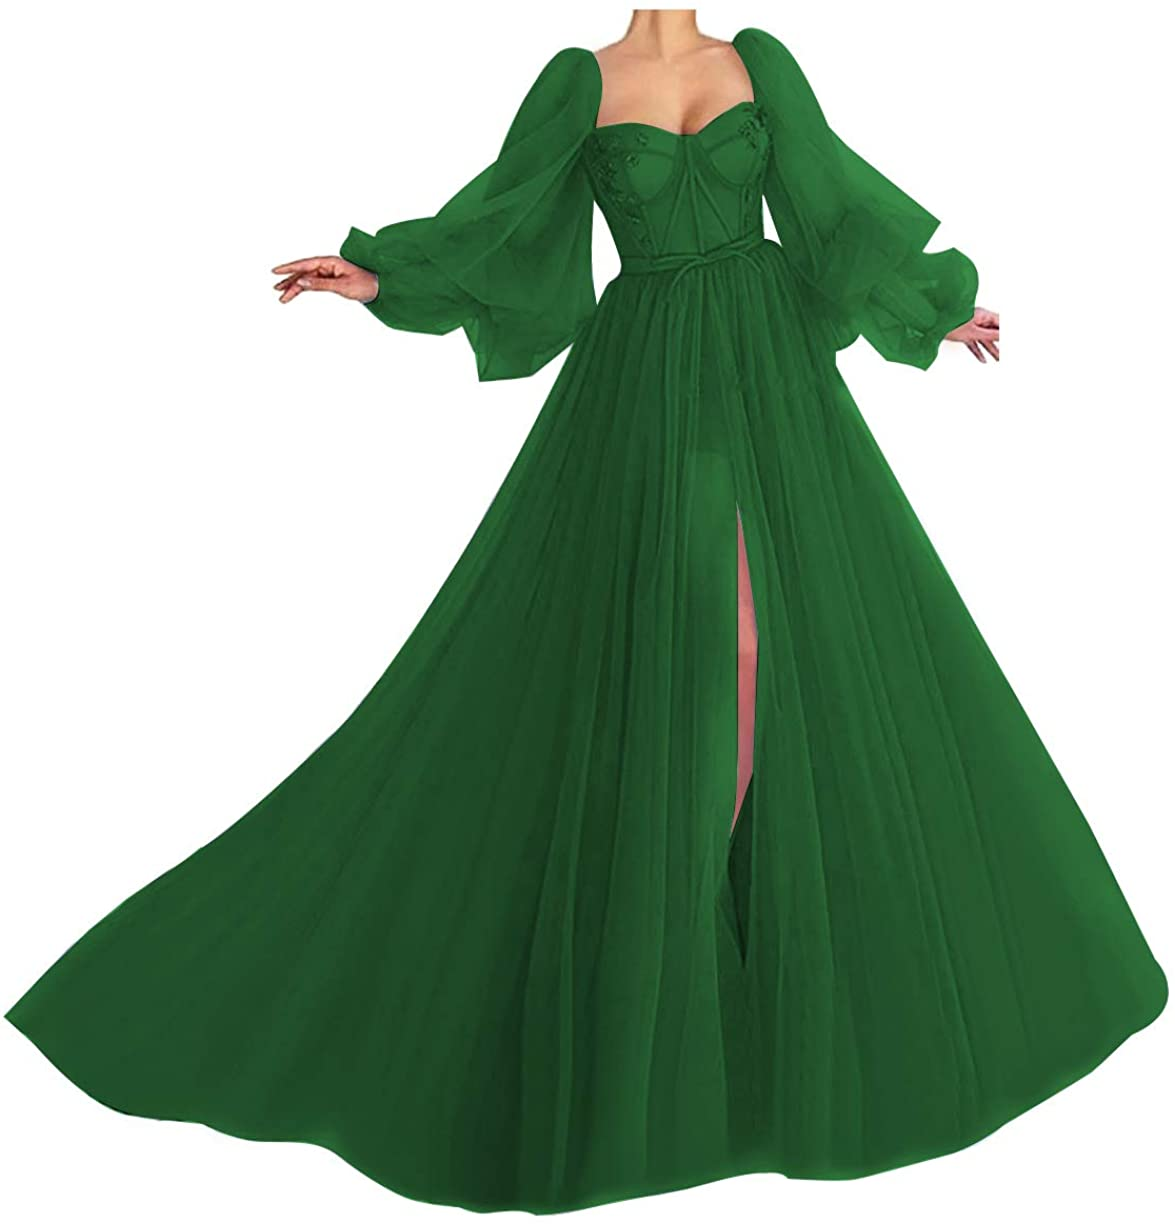 Puffy Sleeve Prom Max 90% OFF Free Shipping New Dress Tulle Wedding Sweetheart Ball Forma Gown